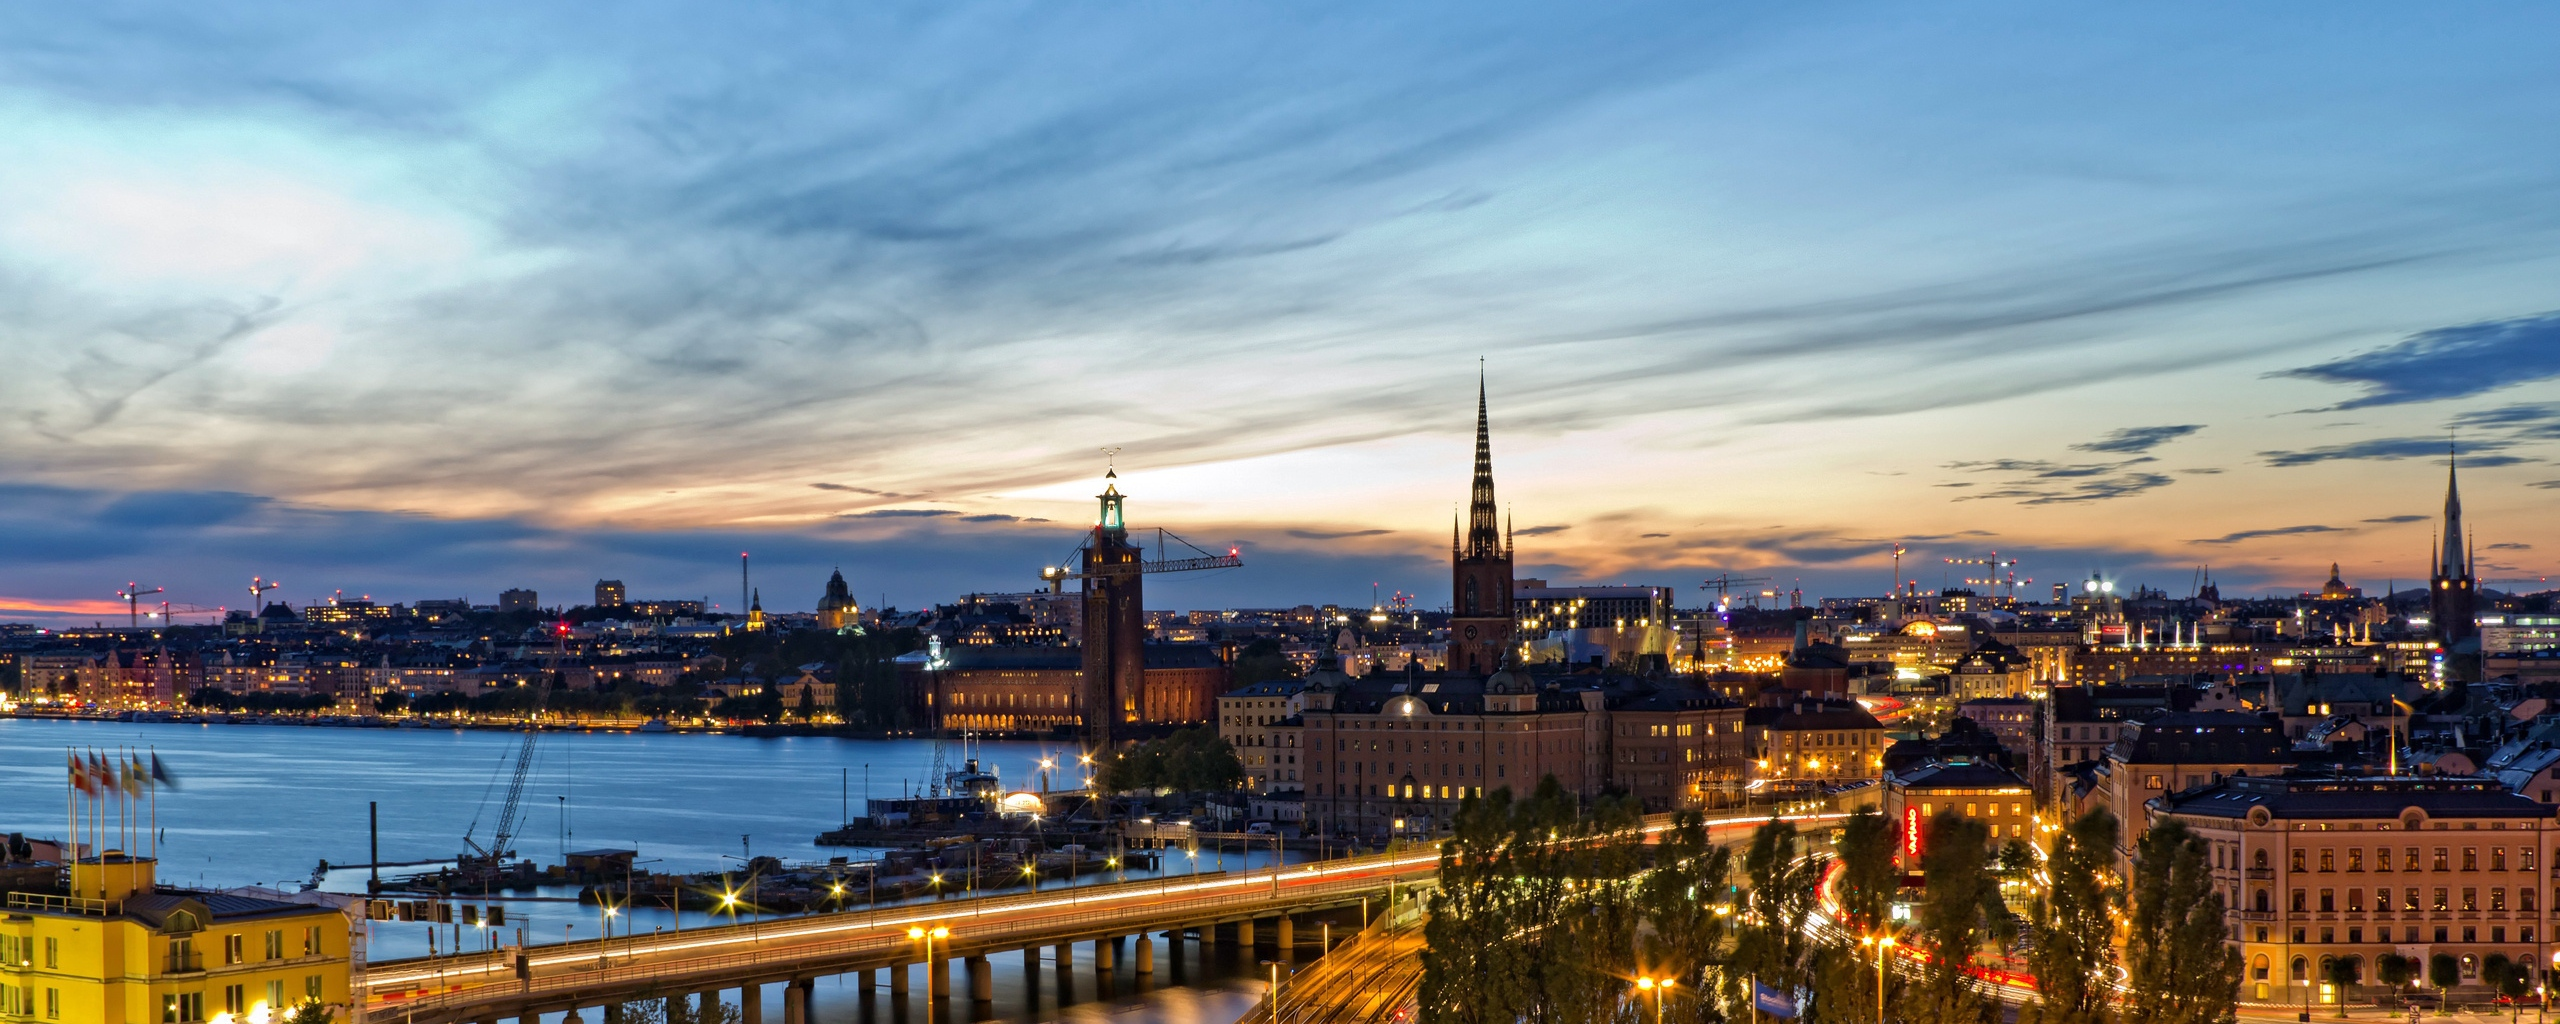 Stockholm Wallpaper Gallery HD Wallpapers Download Free Images Wallpaper [1000image.com]